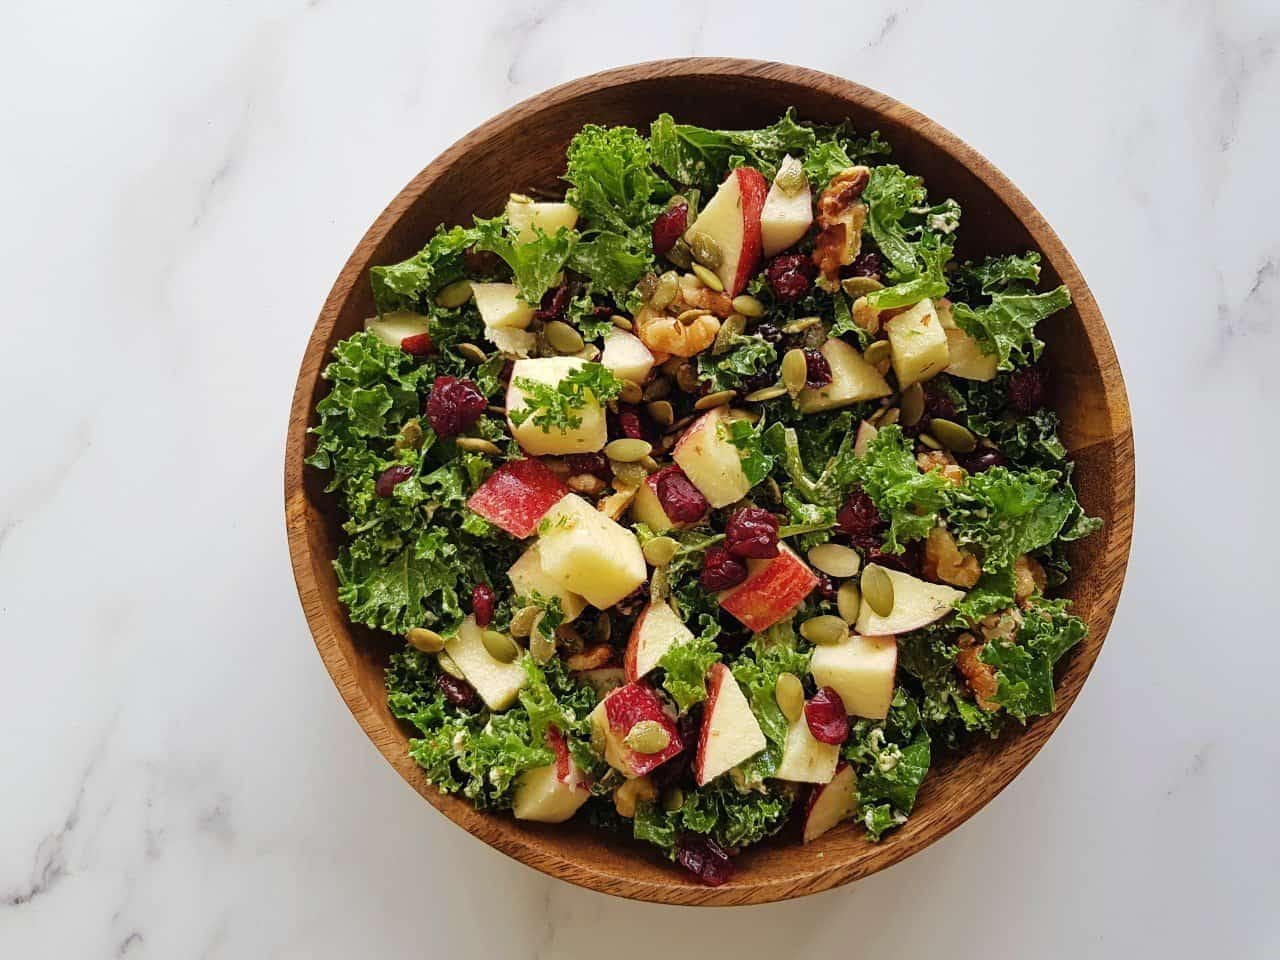 Kale salad with apples in a wooden bowl on a marble table.